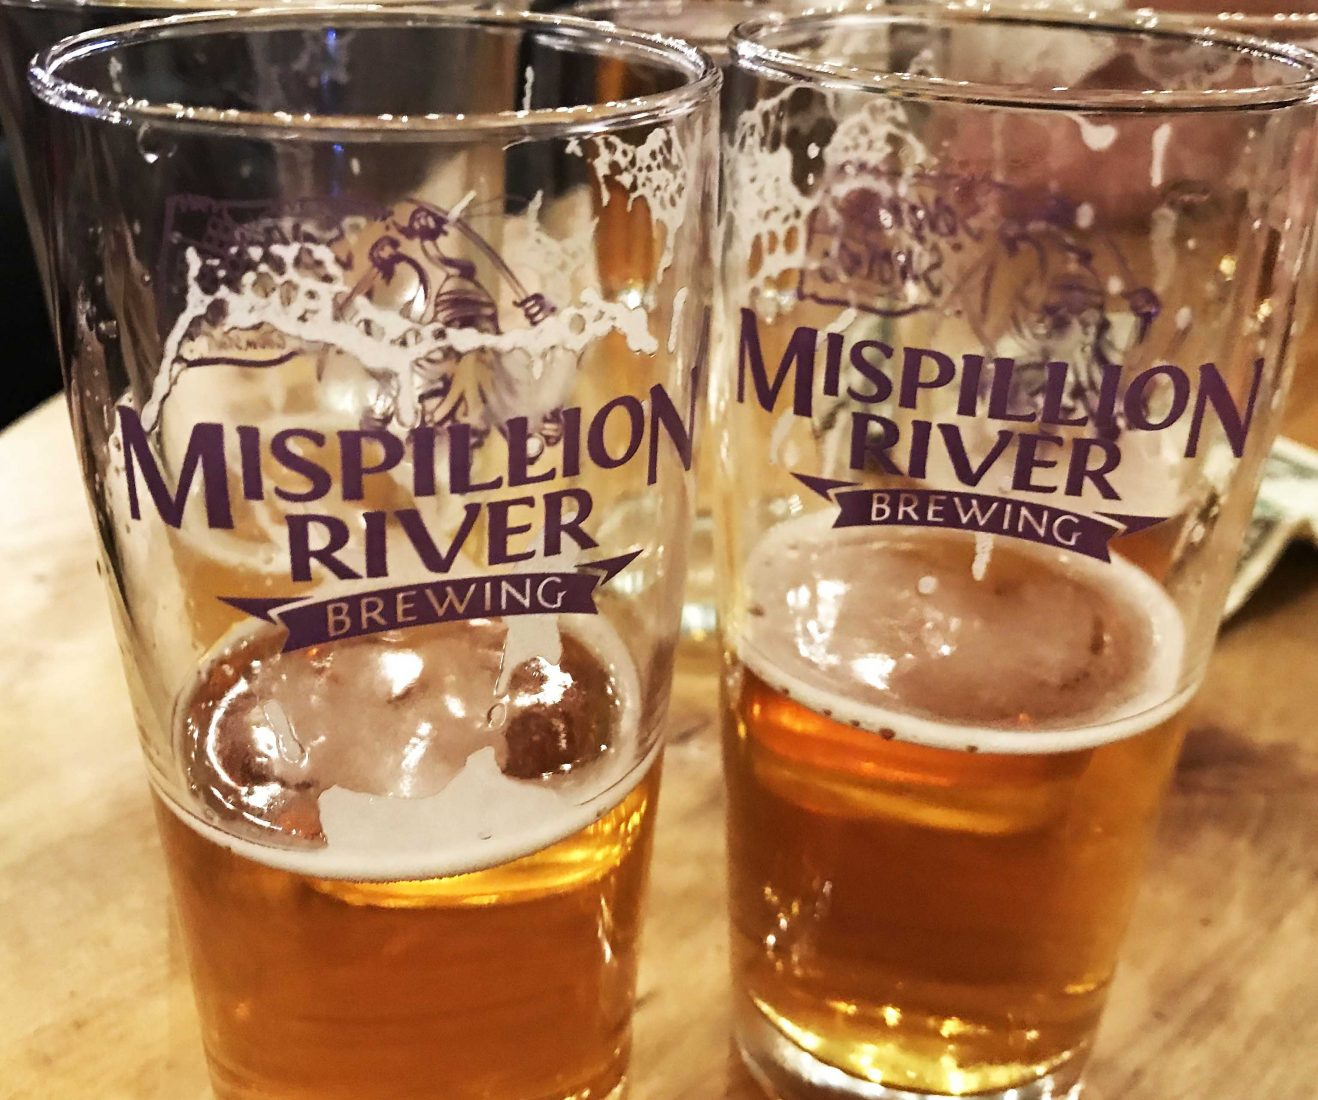 402. Mispillion River Brewing, Milford DE, 2018